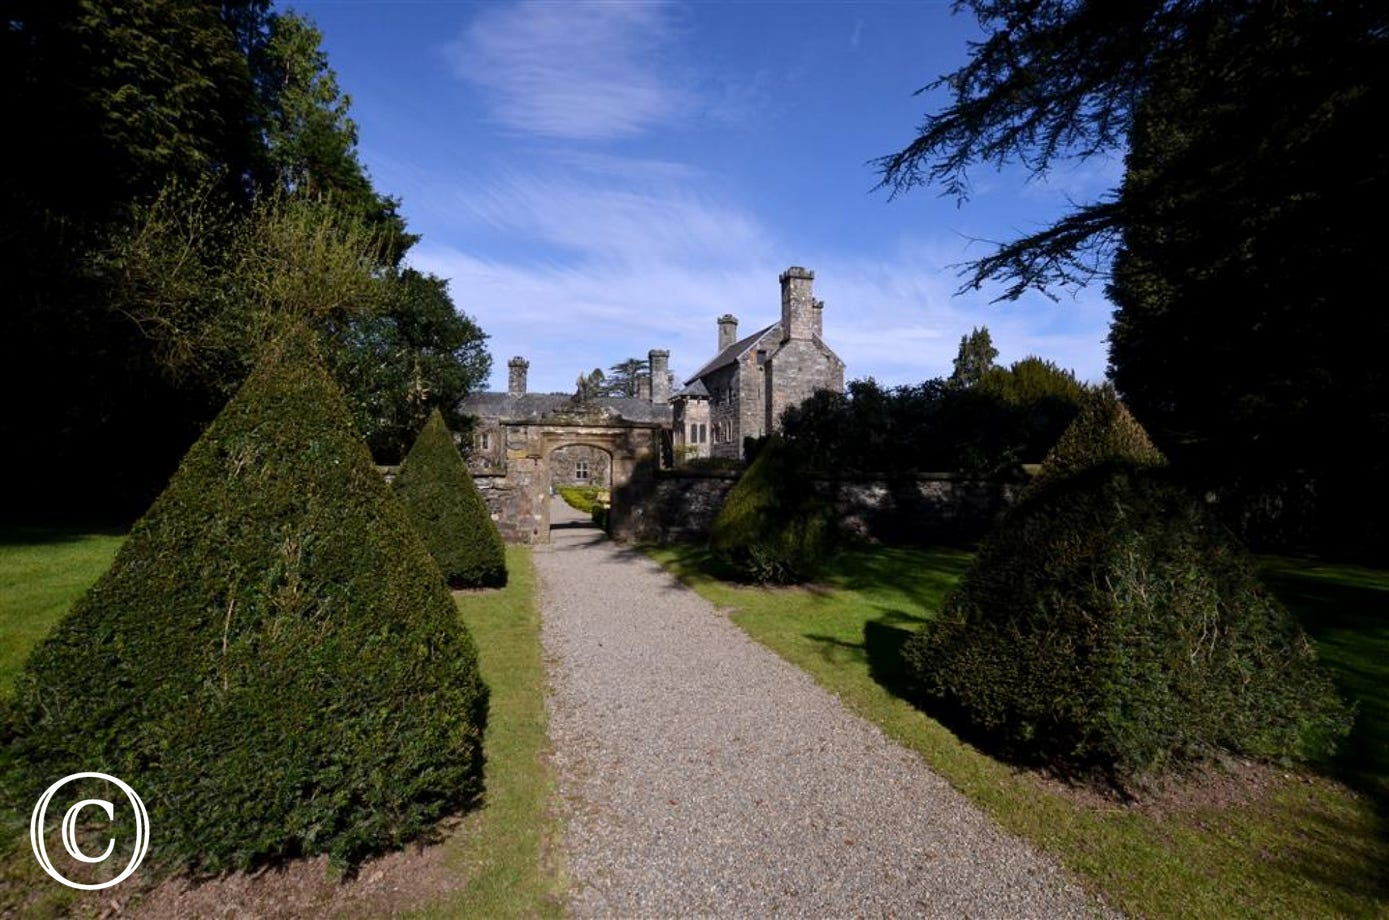 The castle is surrounded by mature landscaped gardens extending down to the river Conwy